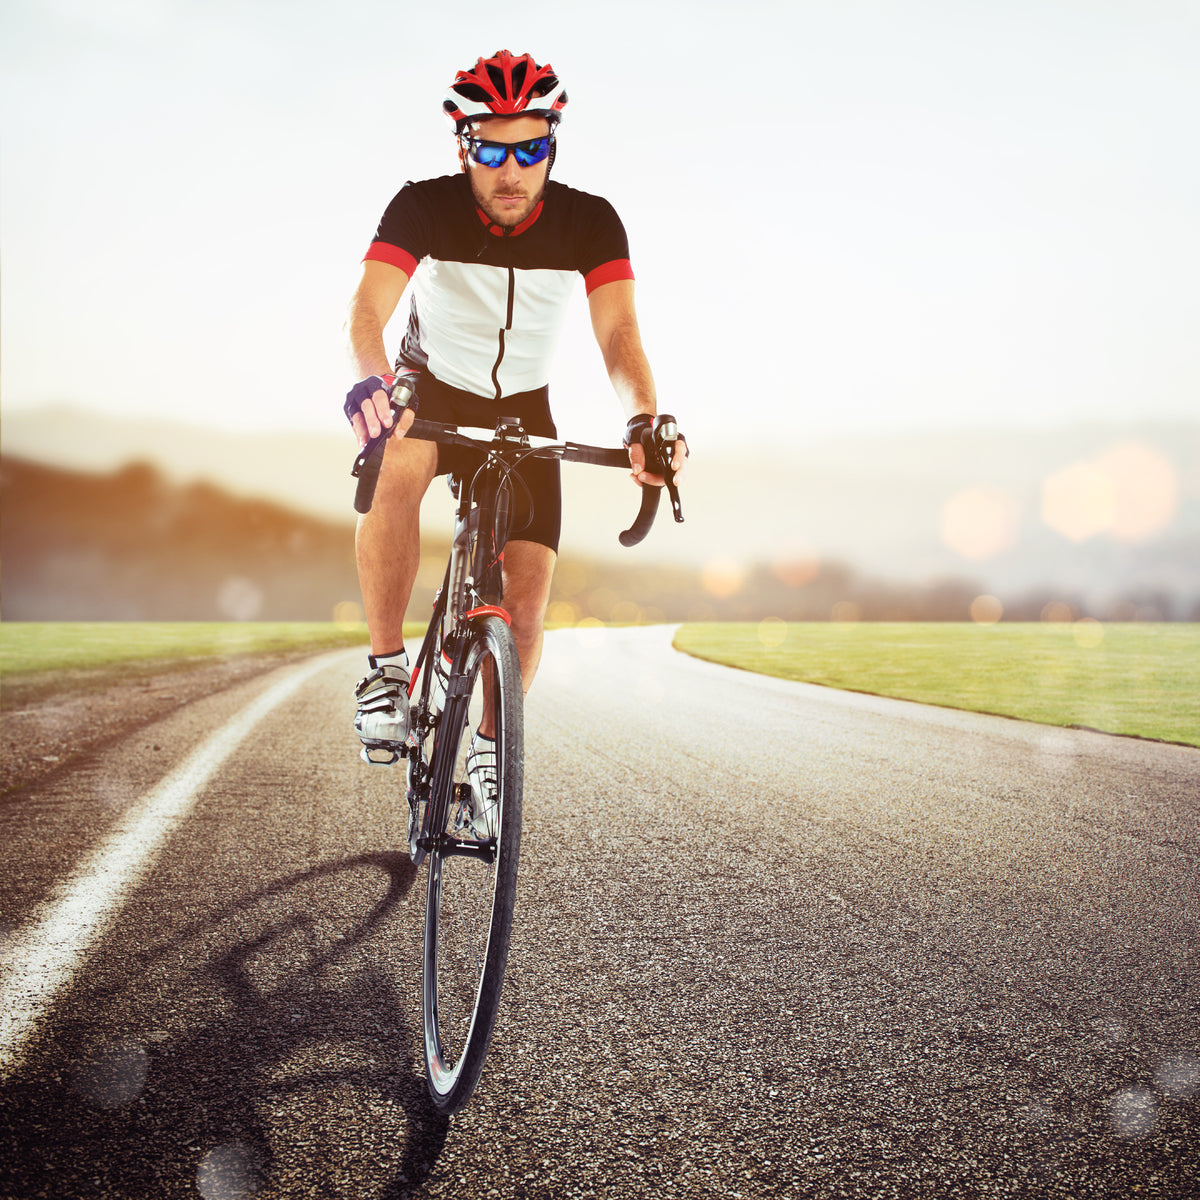 Bike Clothing: What To Ride In During The Summer